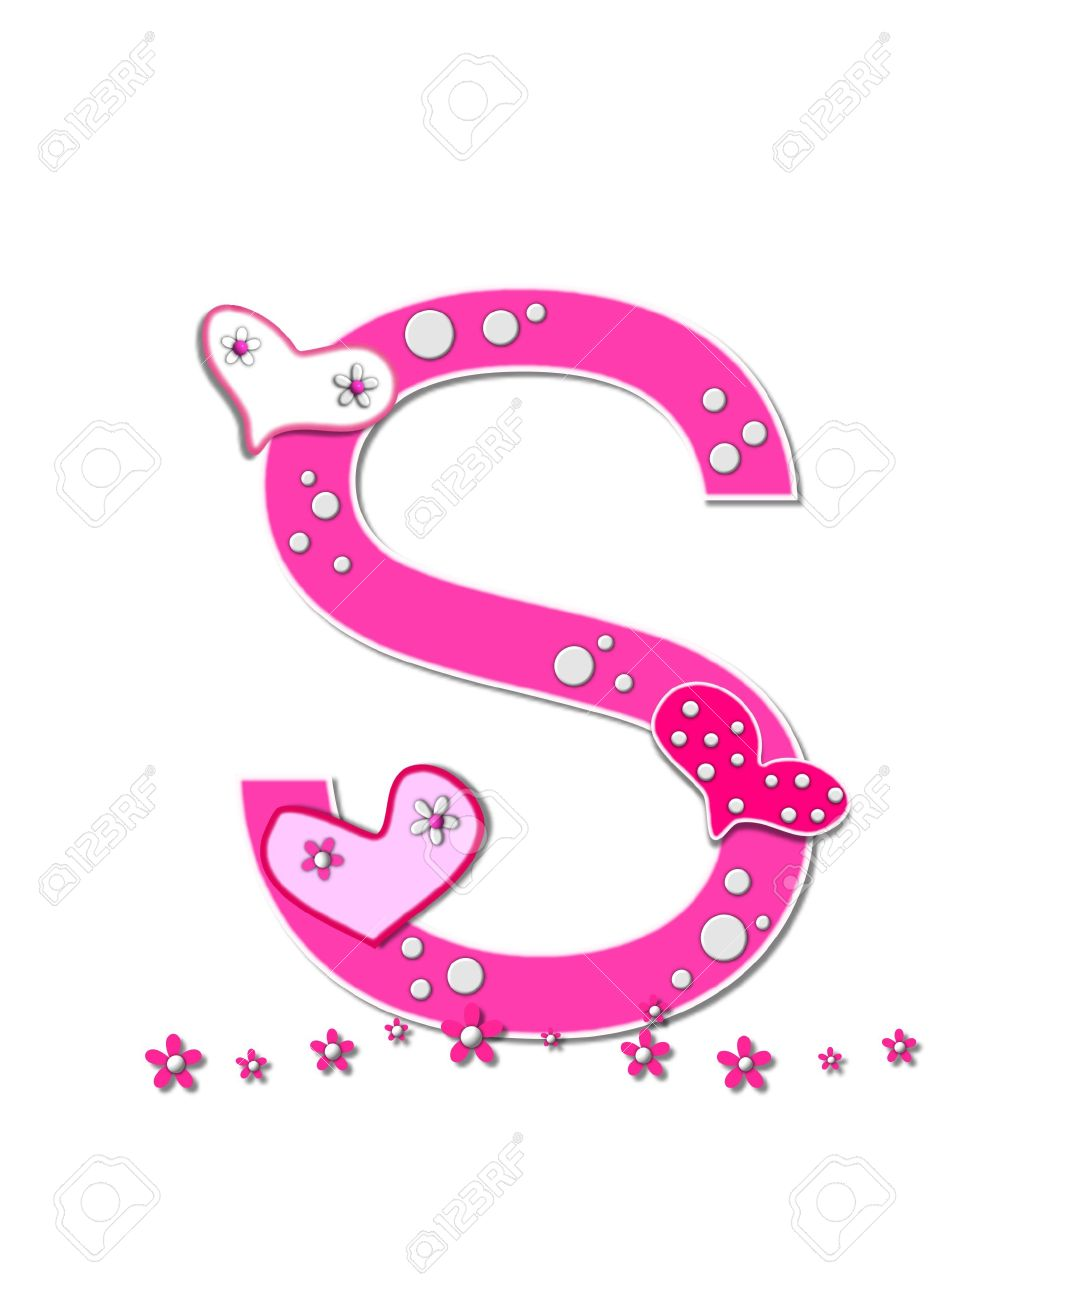 The letter s in the alphabet set heartfull is pink outlined stock photo the letter s in the alphabet set heartfull is pink outlined with white polka dots and hearts decorate letter with a line of pink flowers at mightylinksfo